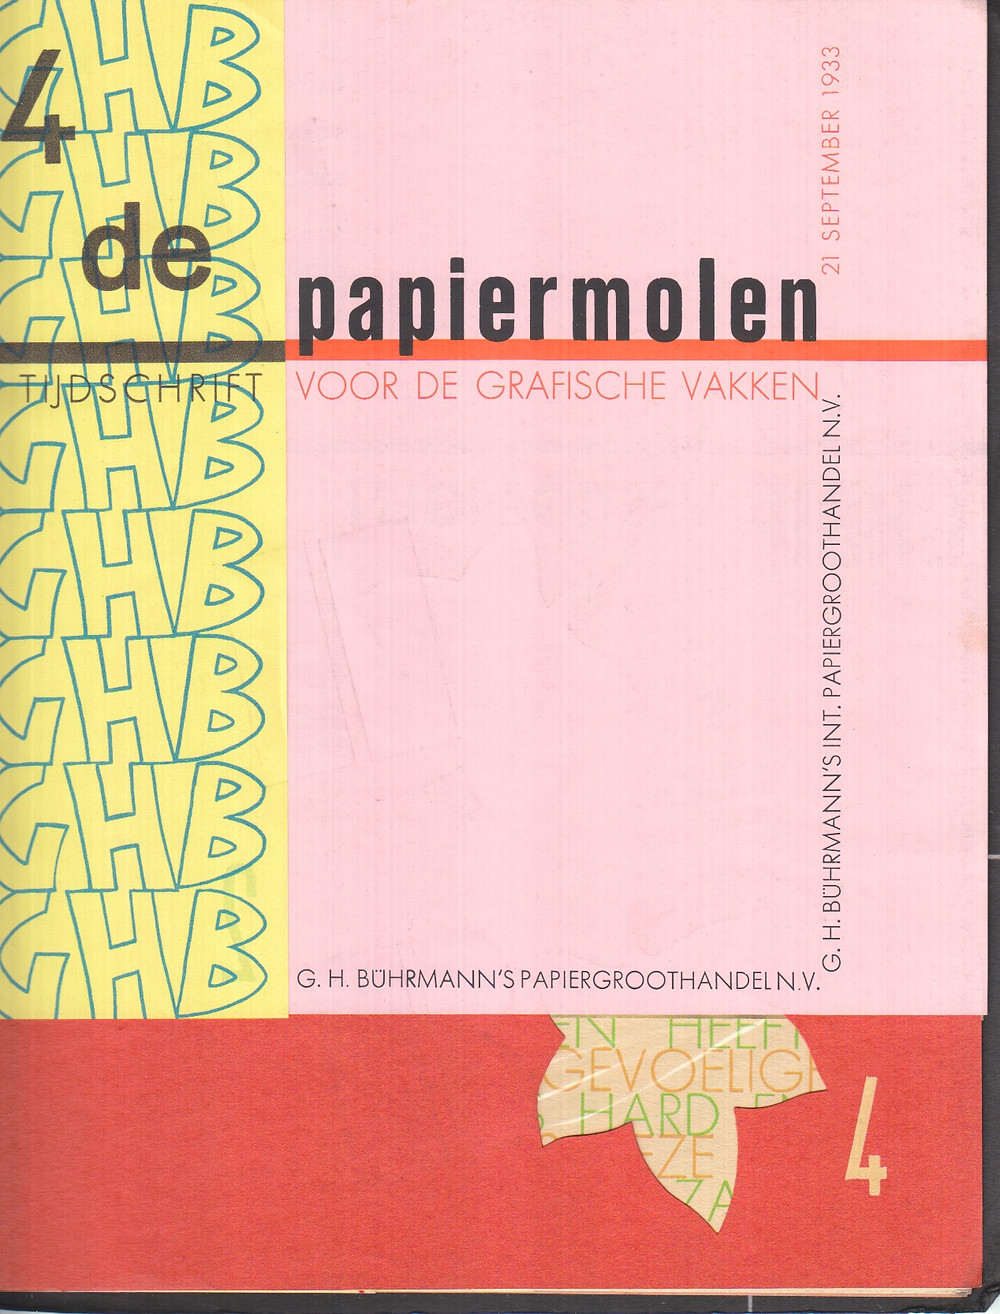 bravura of Papiermolen-September 1933